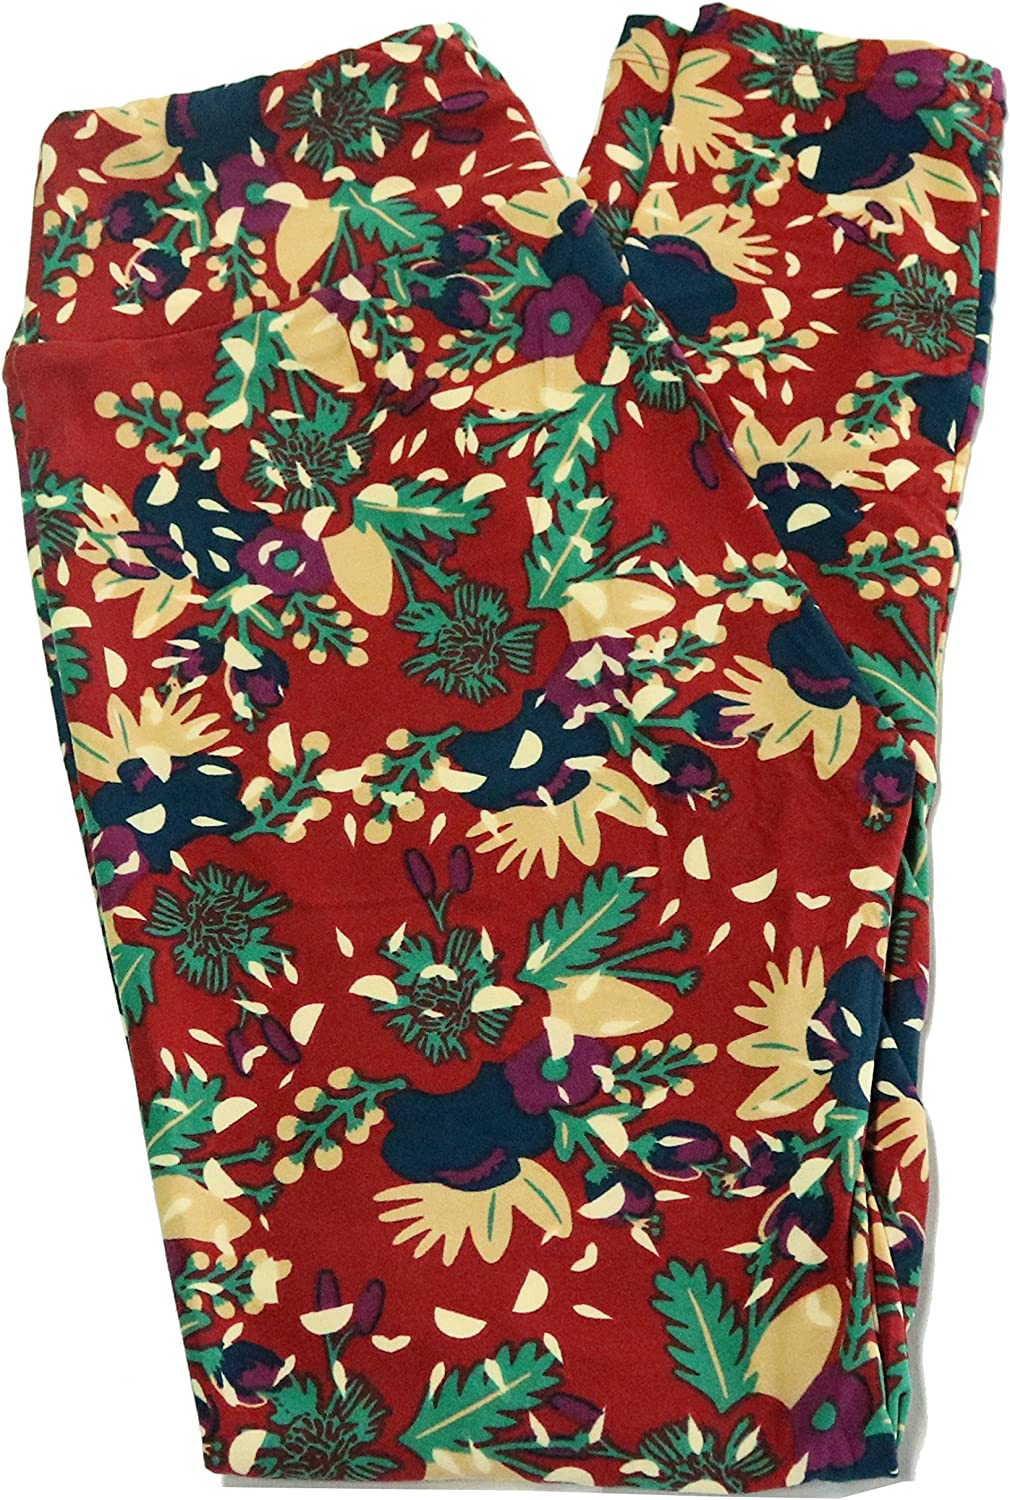 Lularoe Mystery Leggings - One Size (OS) (0-10)